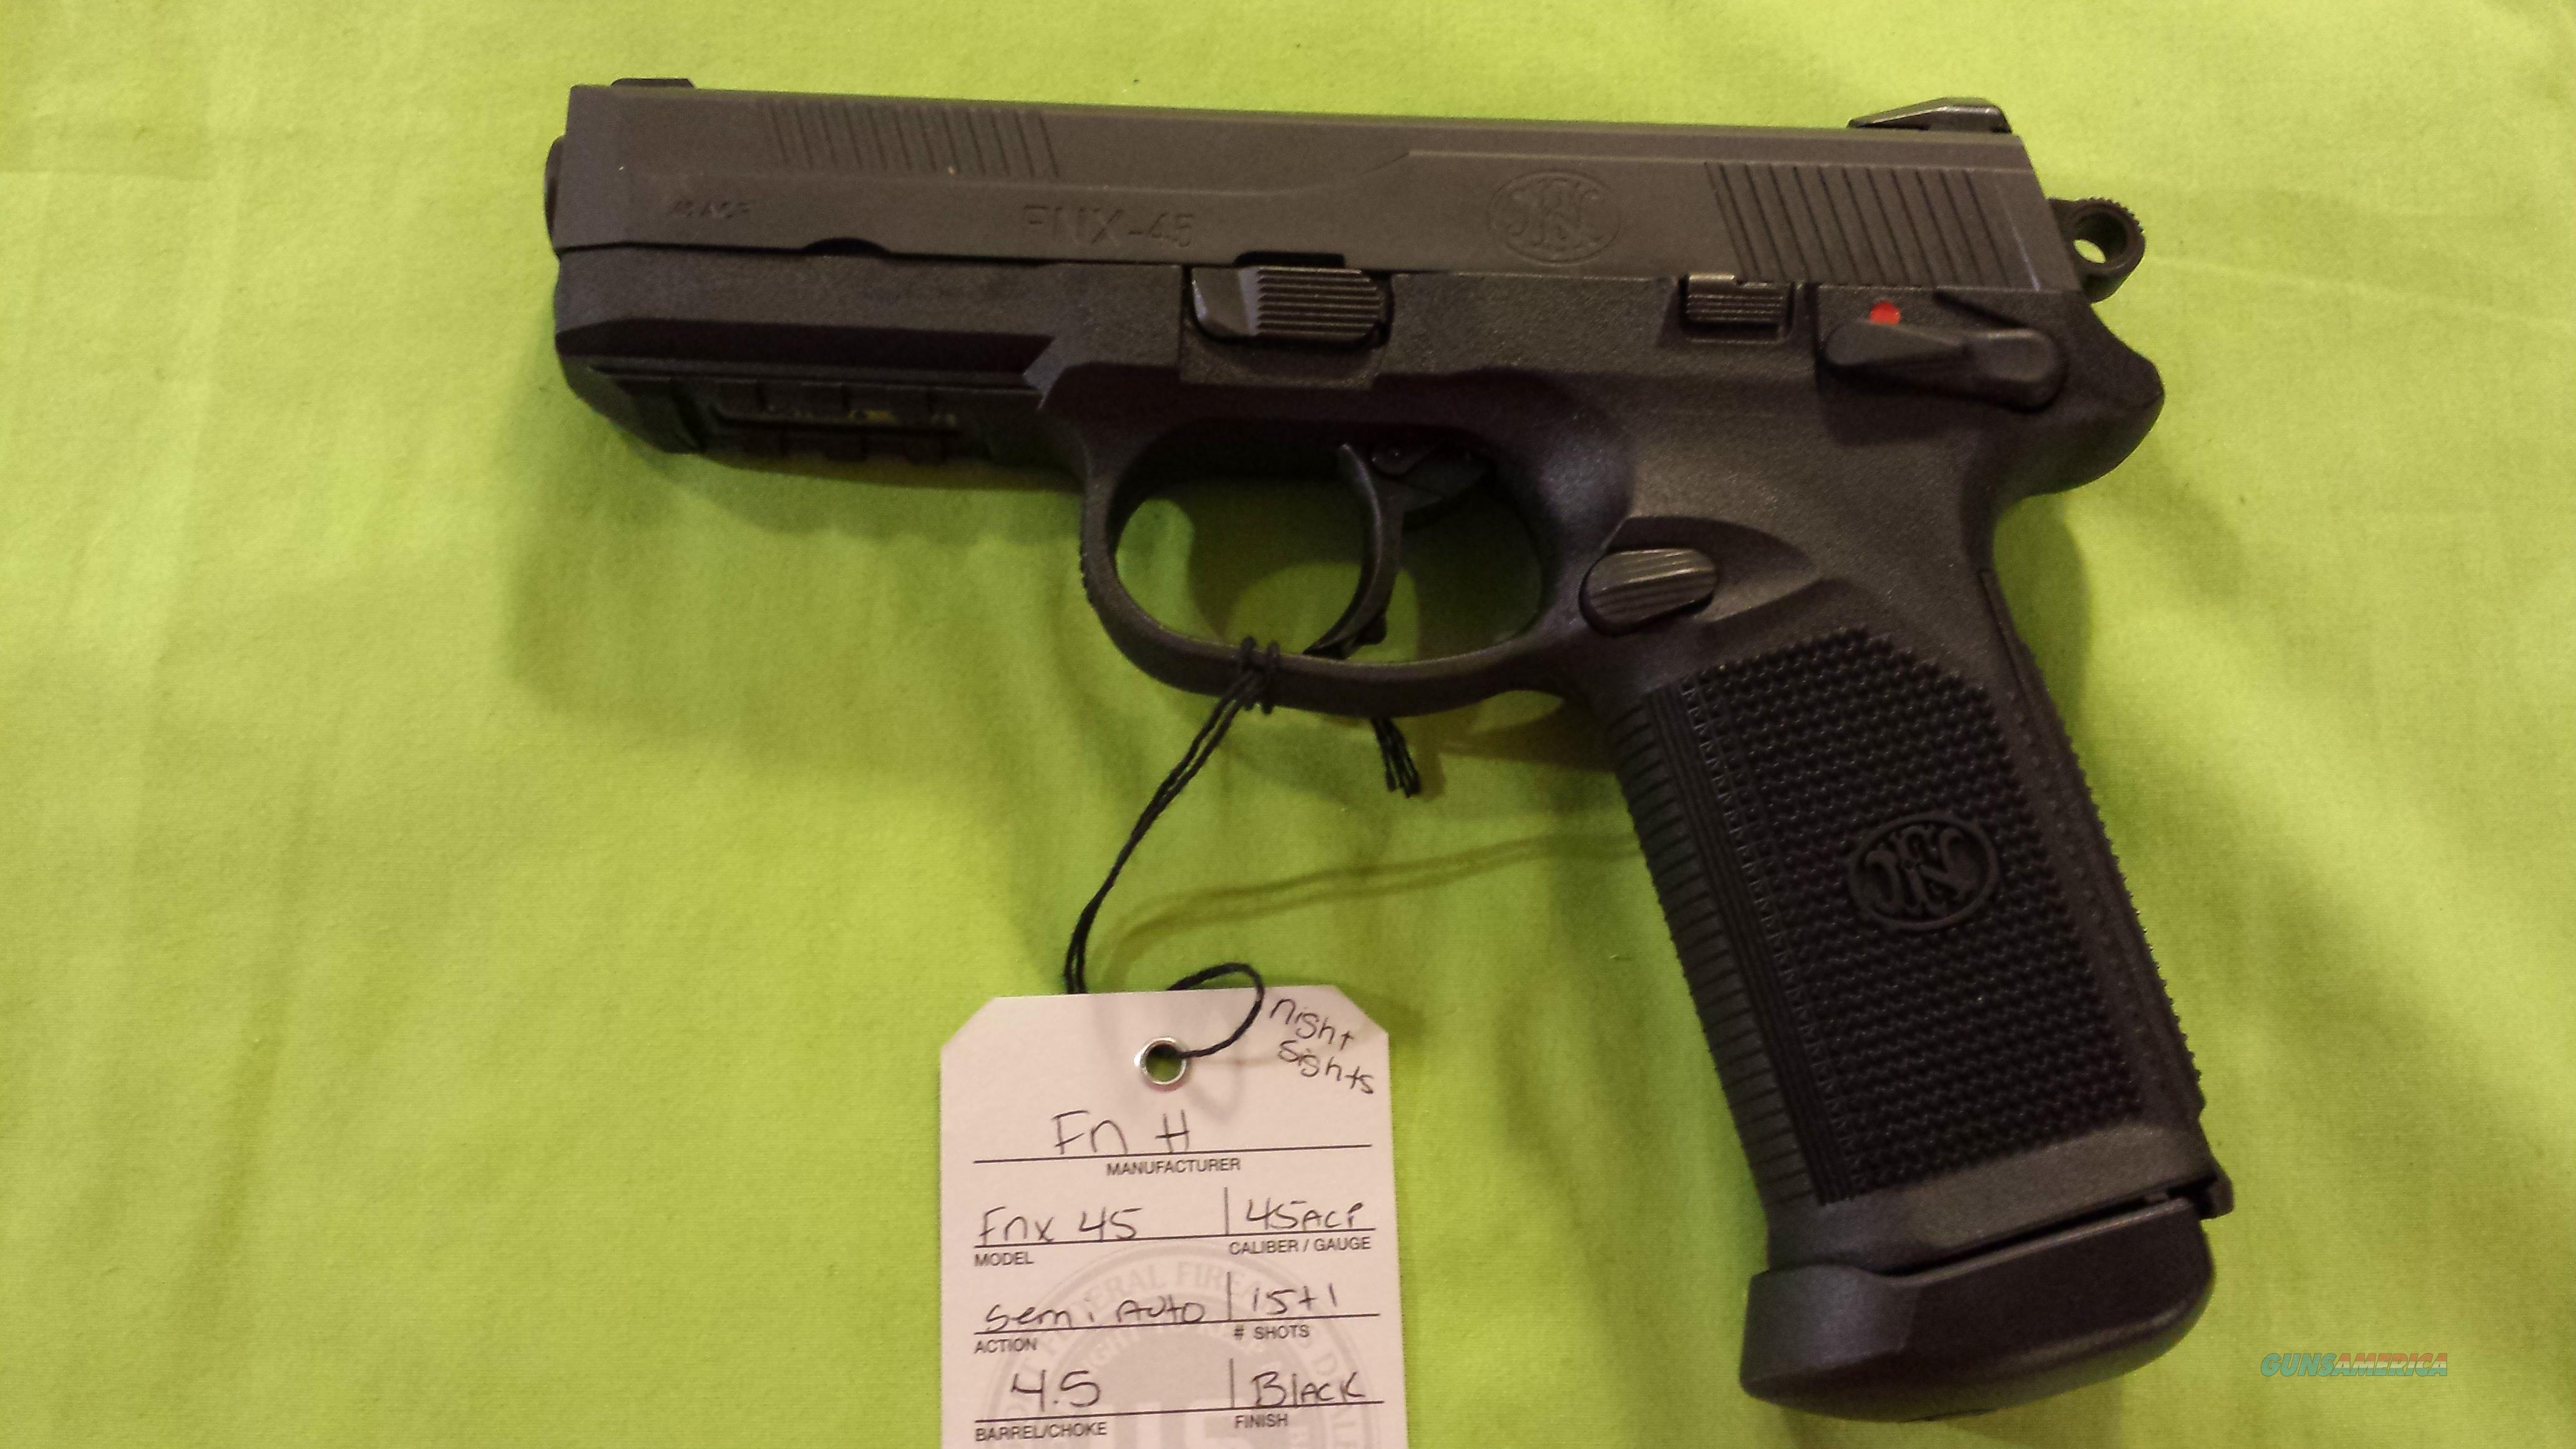 FN FNH FNX 45 DA/SA 15+1 MS BLK/BLK NIGHT SIGHT LE  Guns > Pistols > FNH - Fabrique Nationale (FN) Pistols > High Power Type